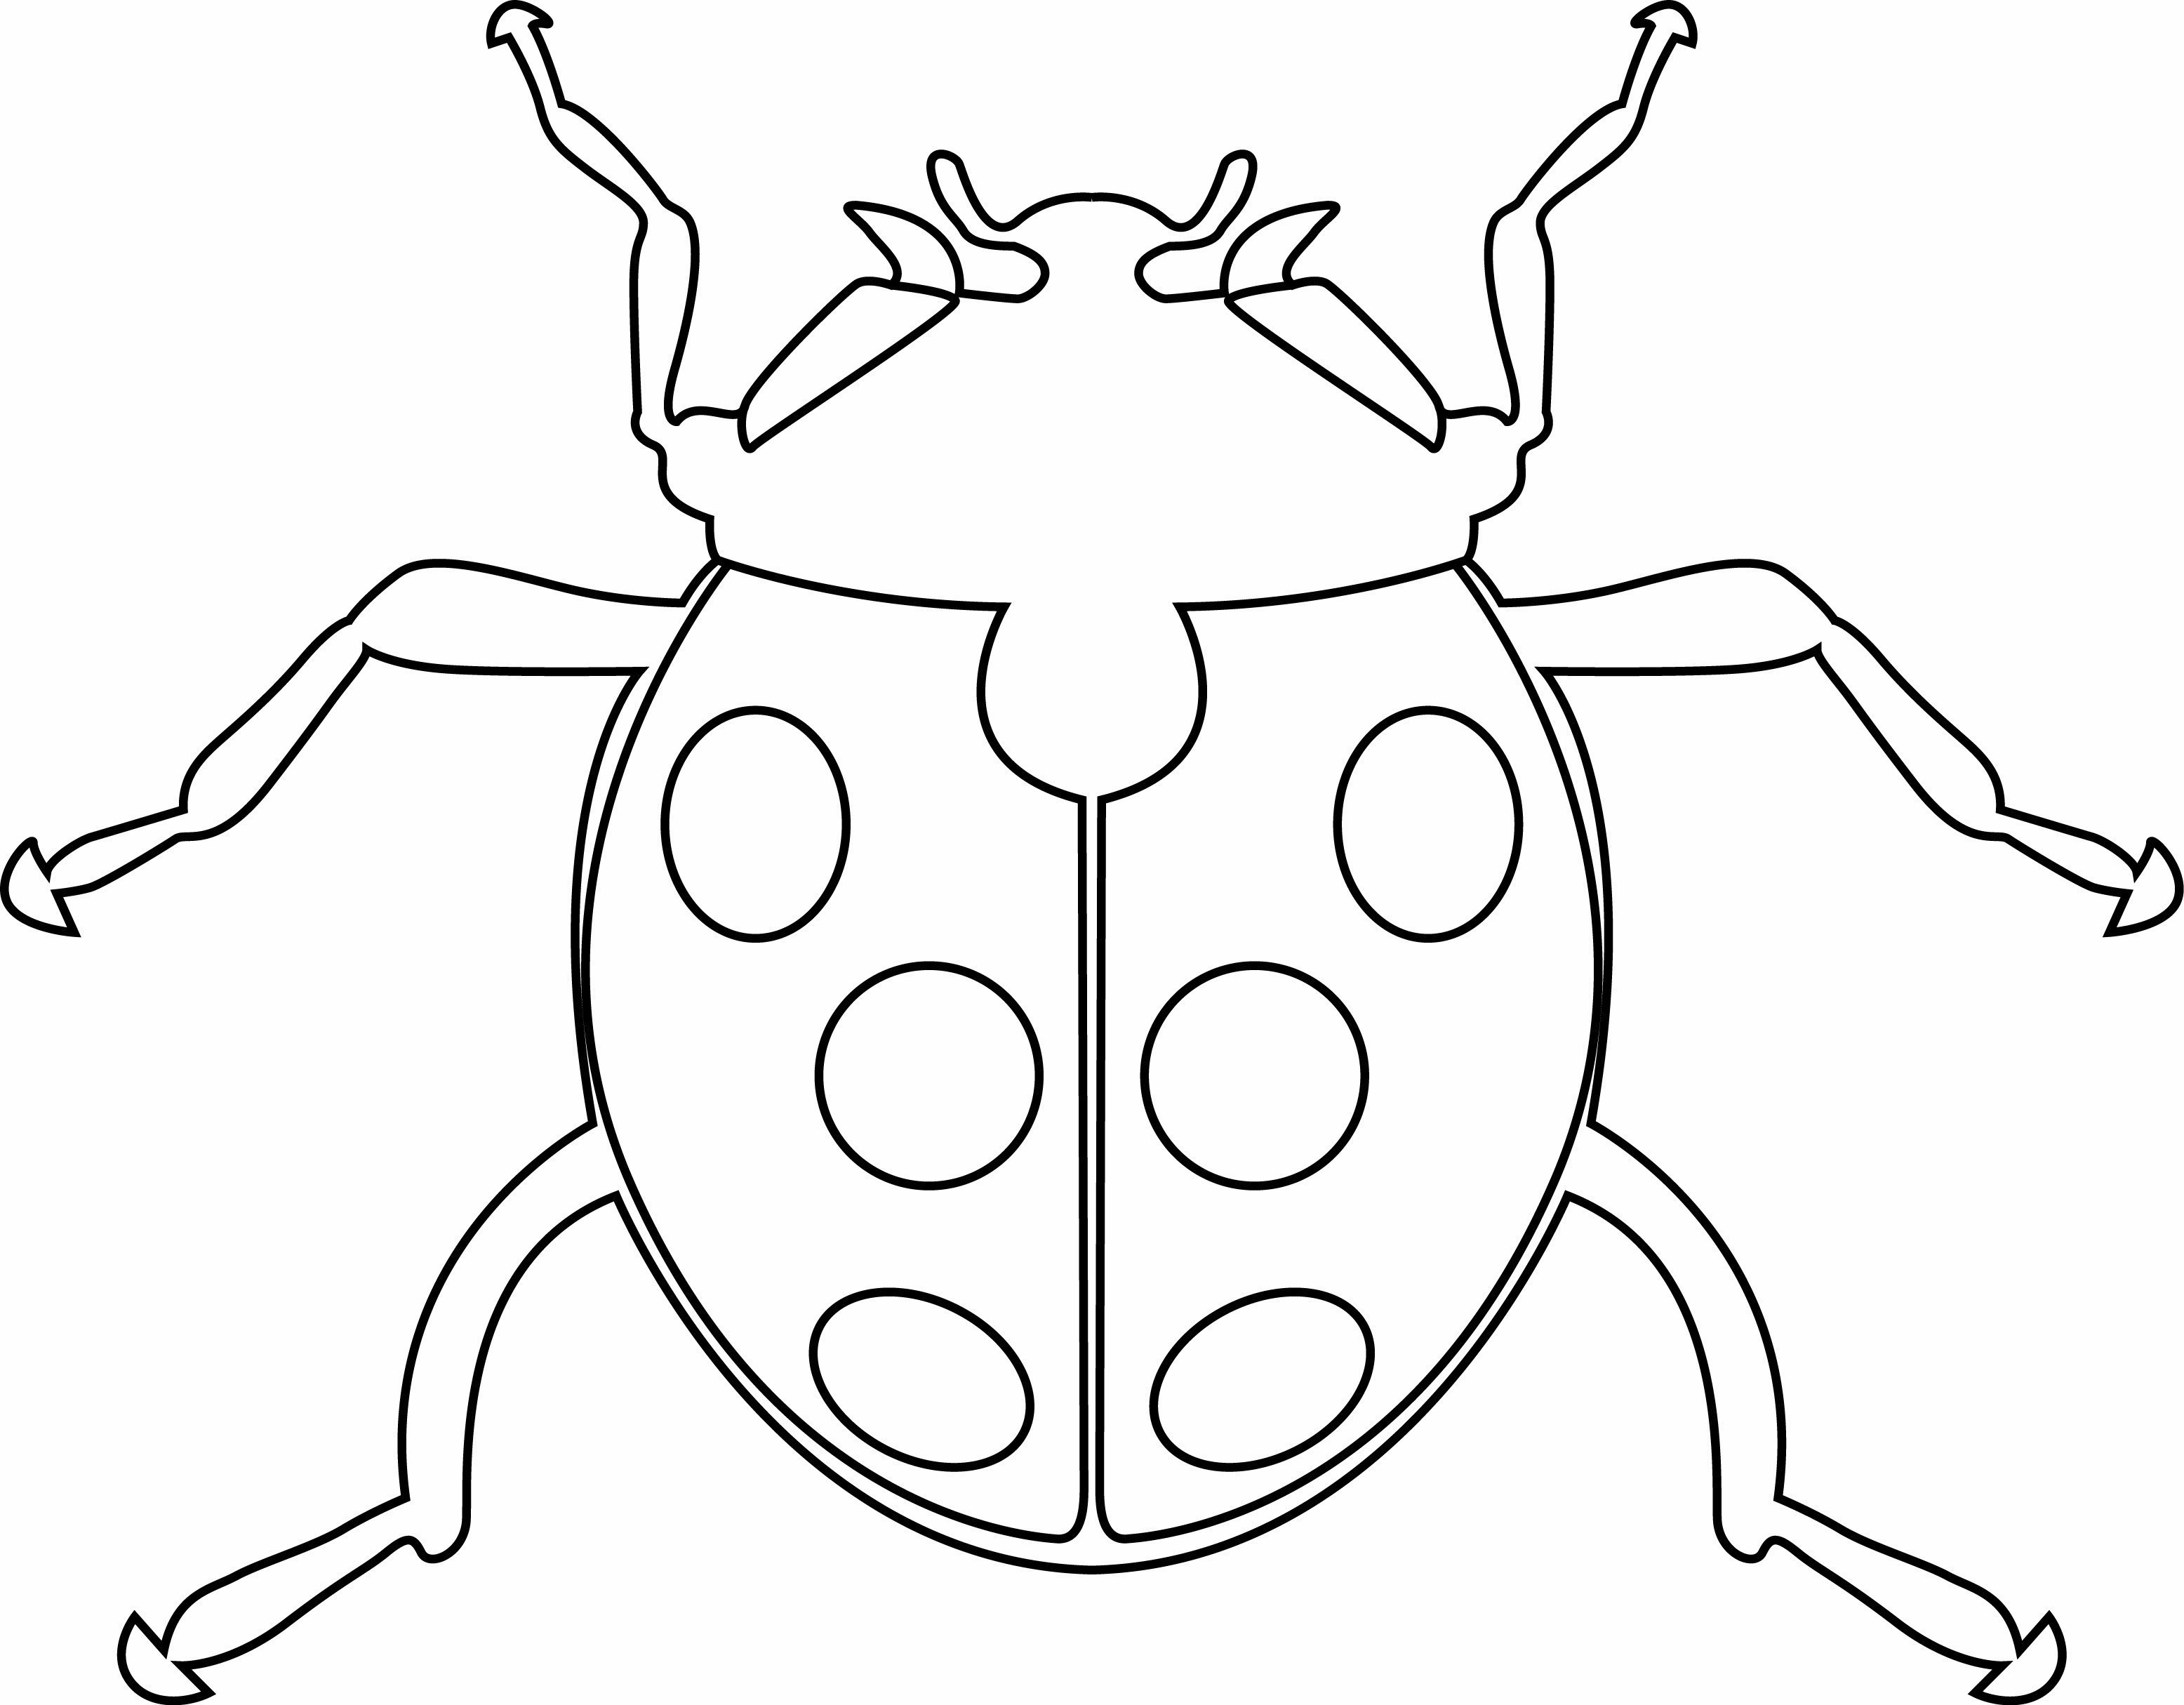 Coloriage - Animaux : Coccinelle 06 - 10 Doigts